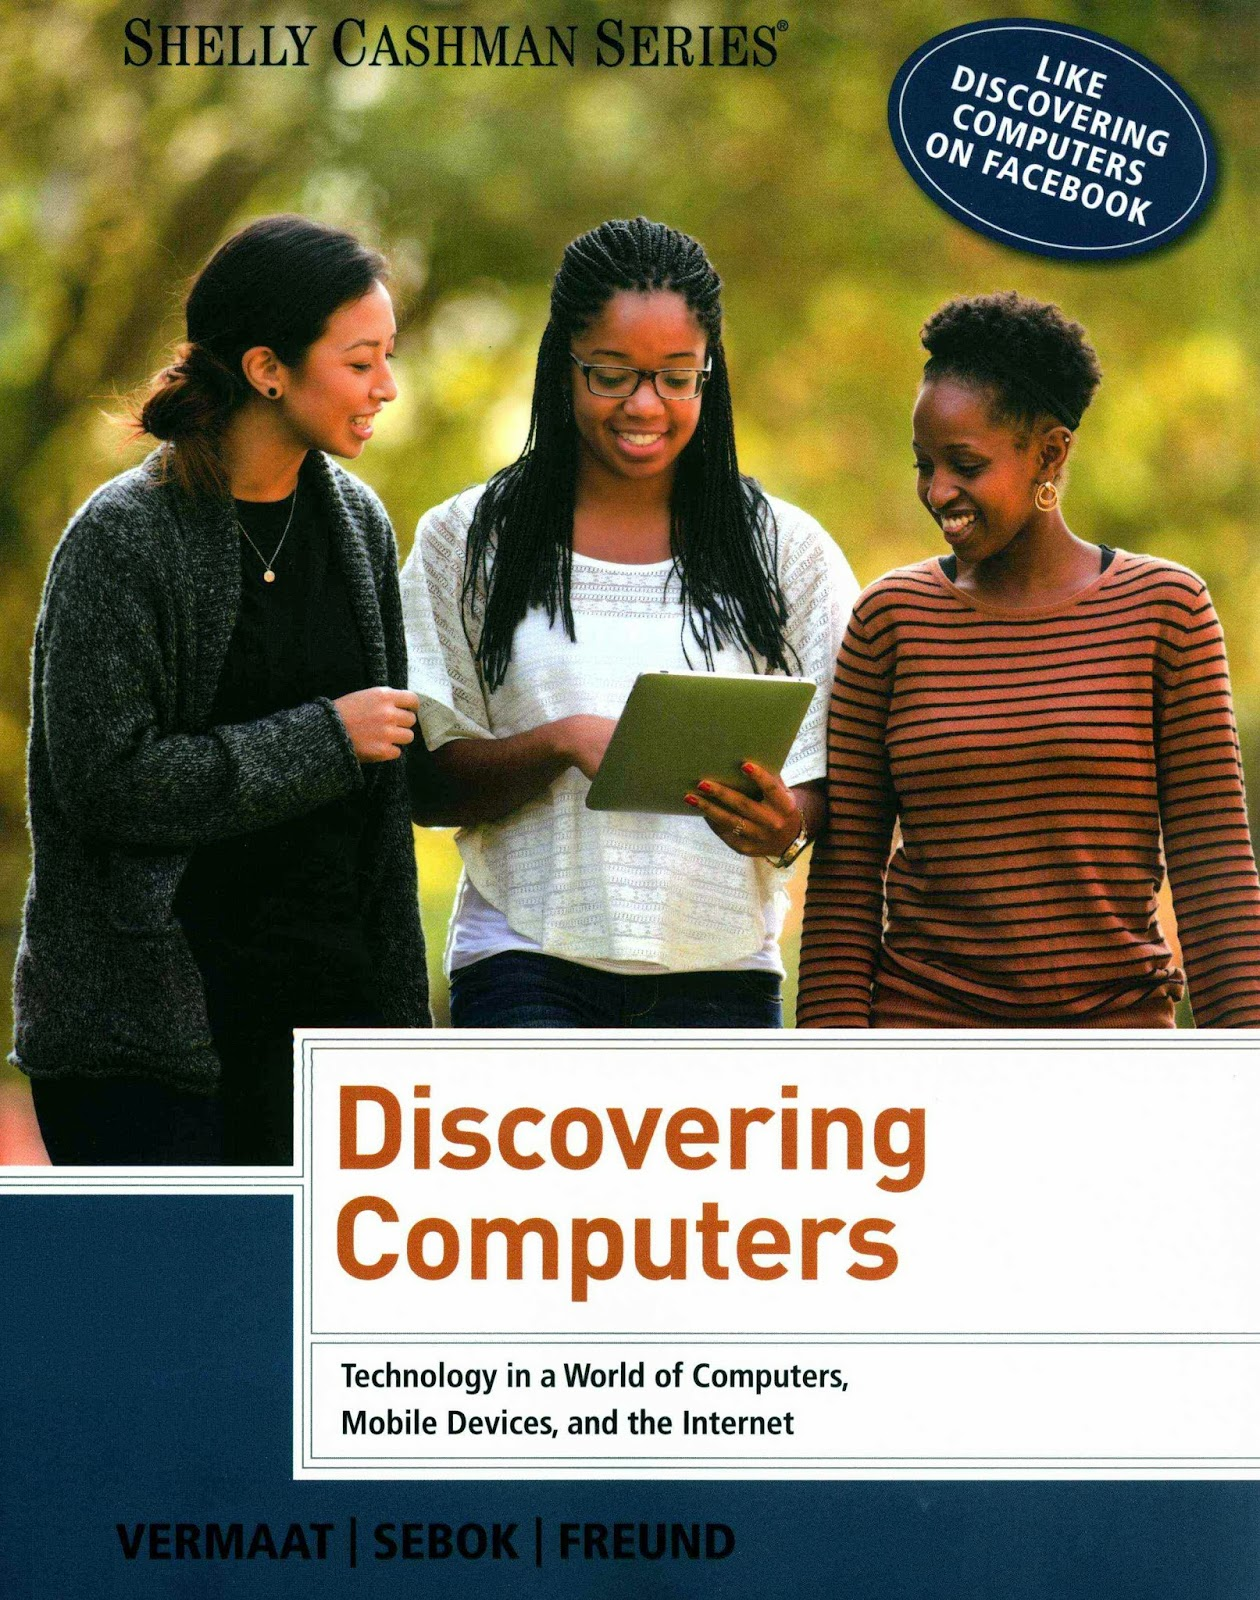 Download free discovering ebook computers